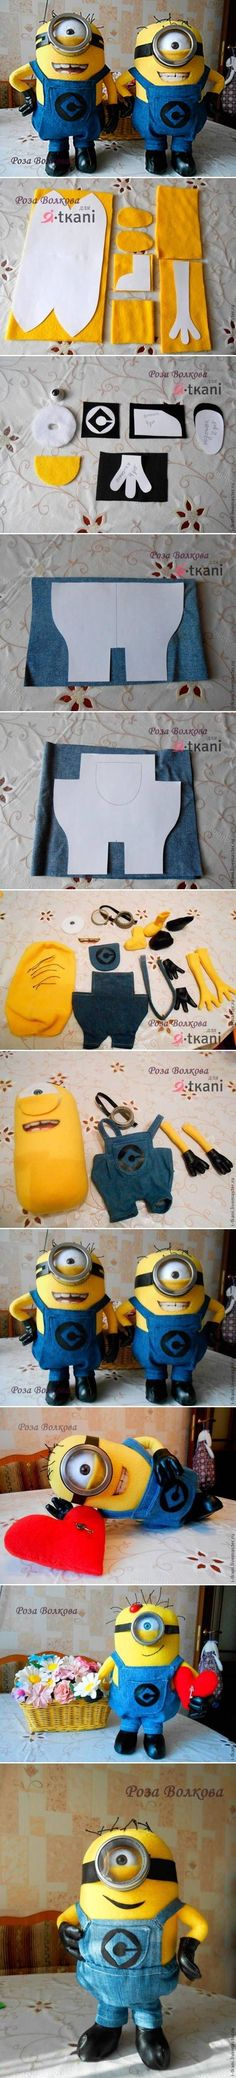 DIY minion dolls!! This is awesome!!